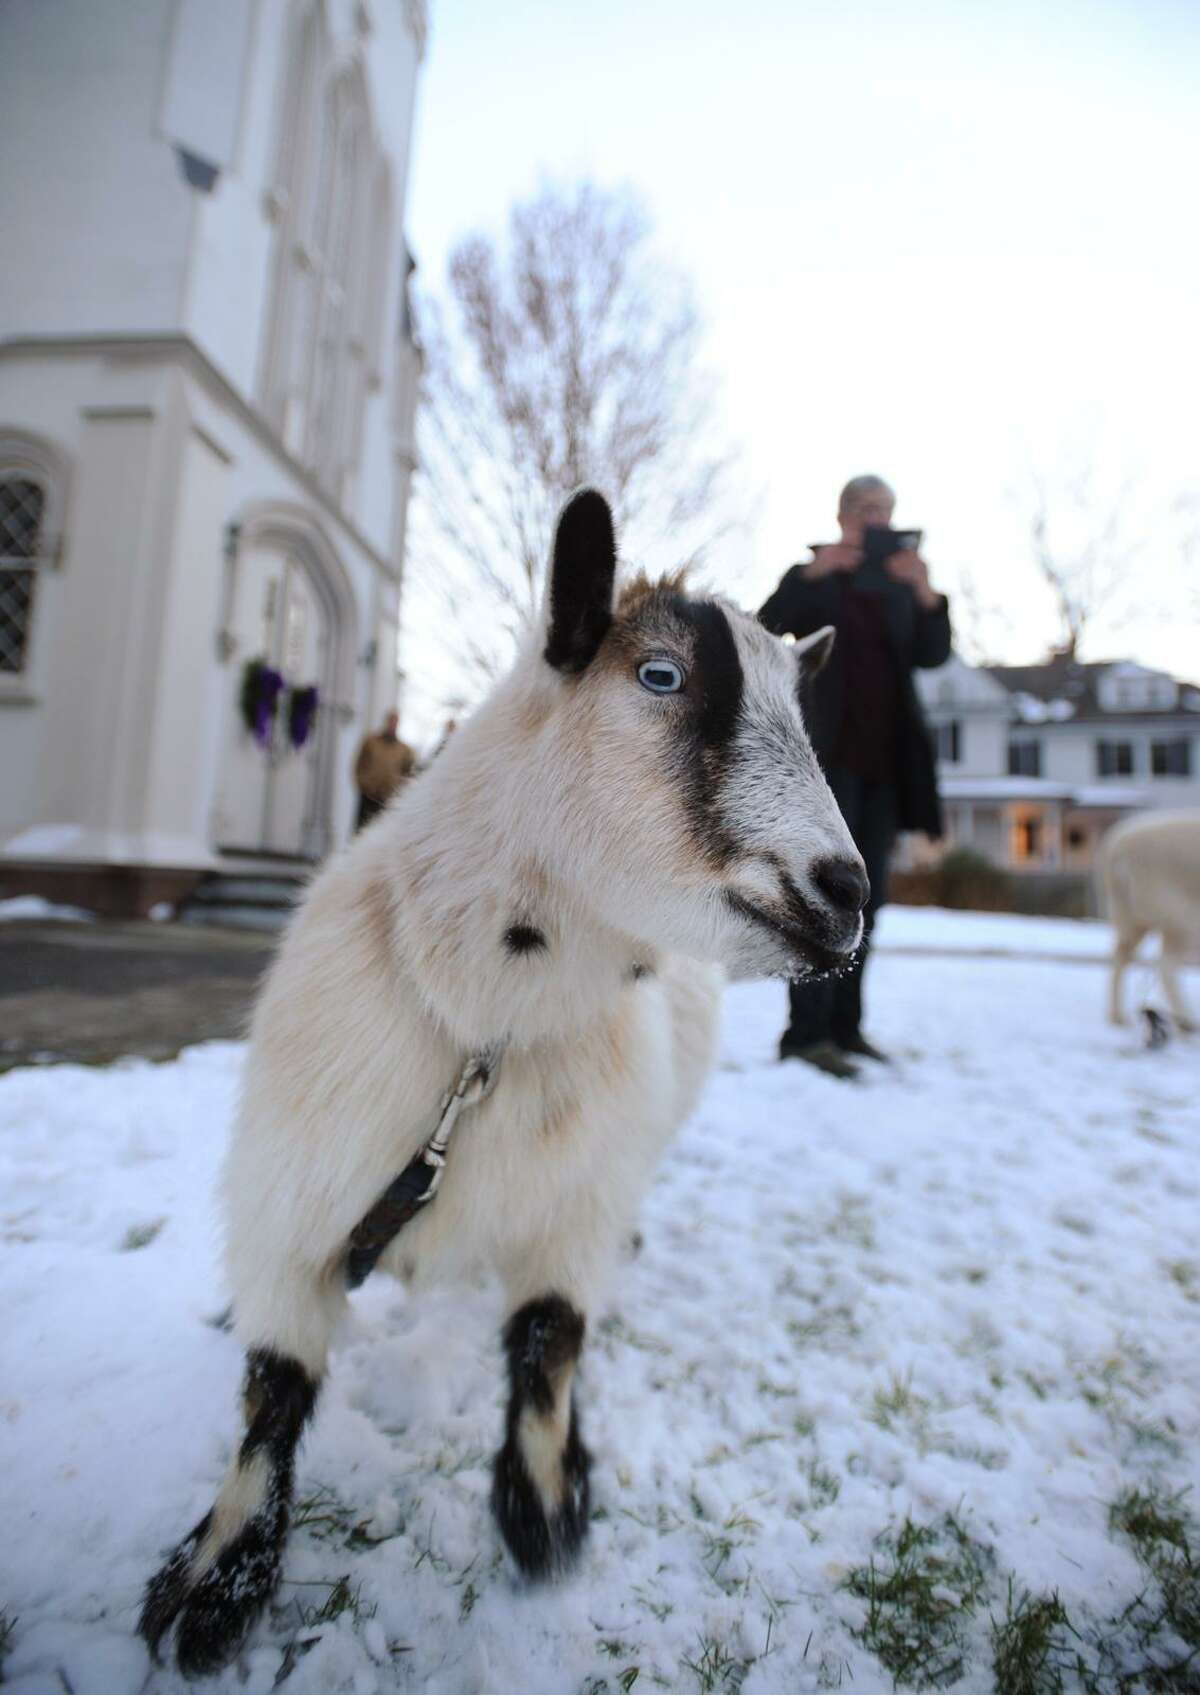 A goat waits outside Trinity Episcopal Church in the Southport section of Fairfield, Conn. for the start of the church's 93rd Annual Christmas Pageant on Sunday, December 17, 2017.